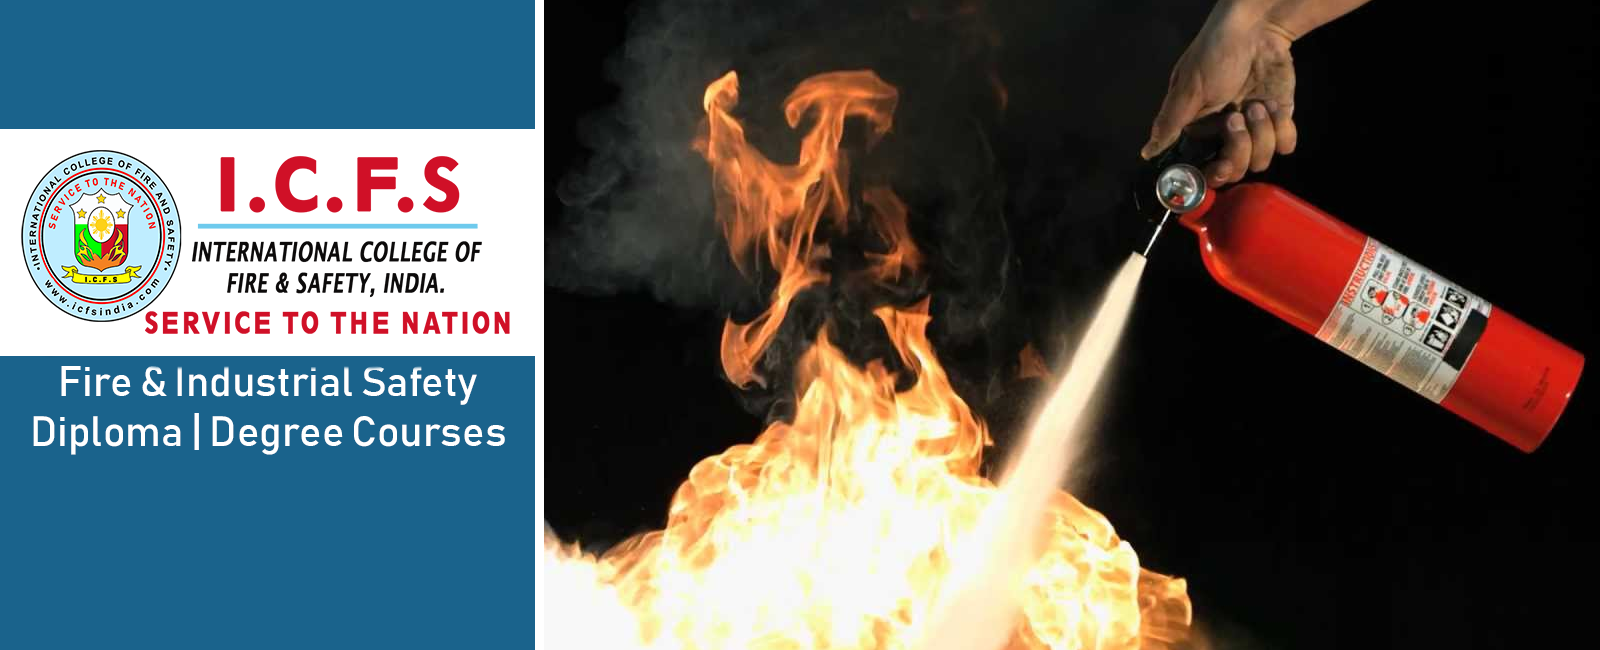 fire-safety-course-india-icfs